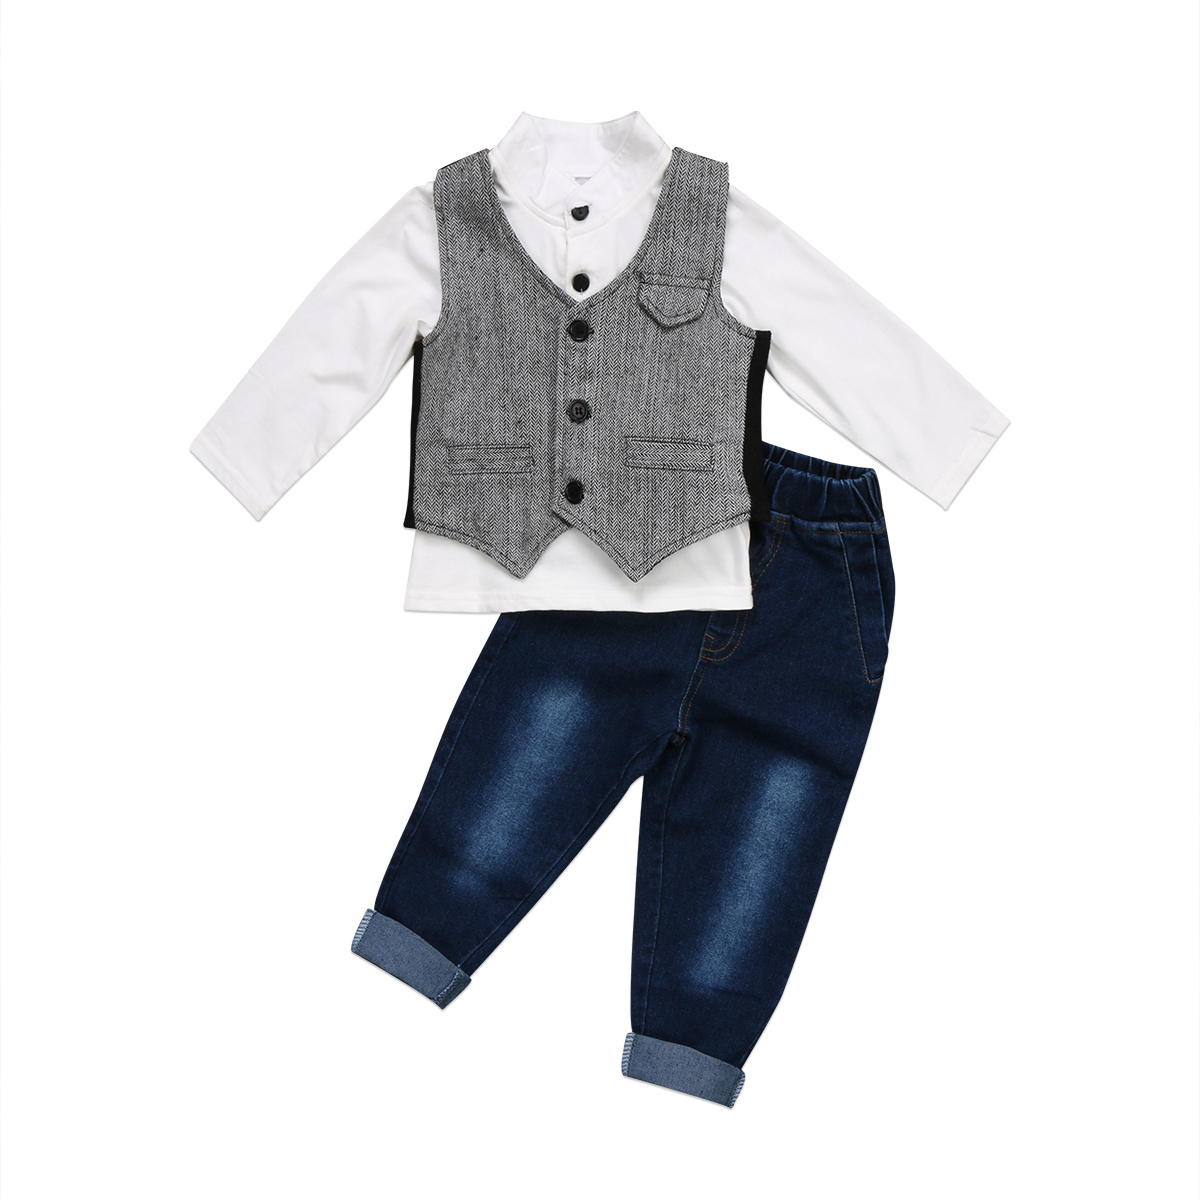 Fashion Toddler Baby Boys Clothes Set Gentleman 2017 New Formal Suit Waistcoat Denim Pants Tuxedo Party Outfits Set